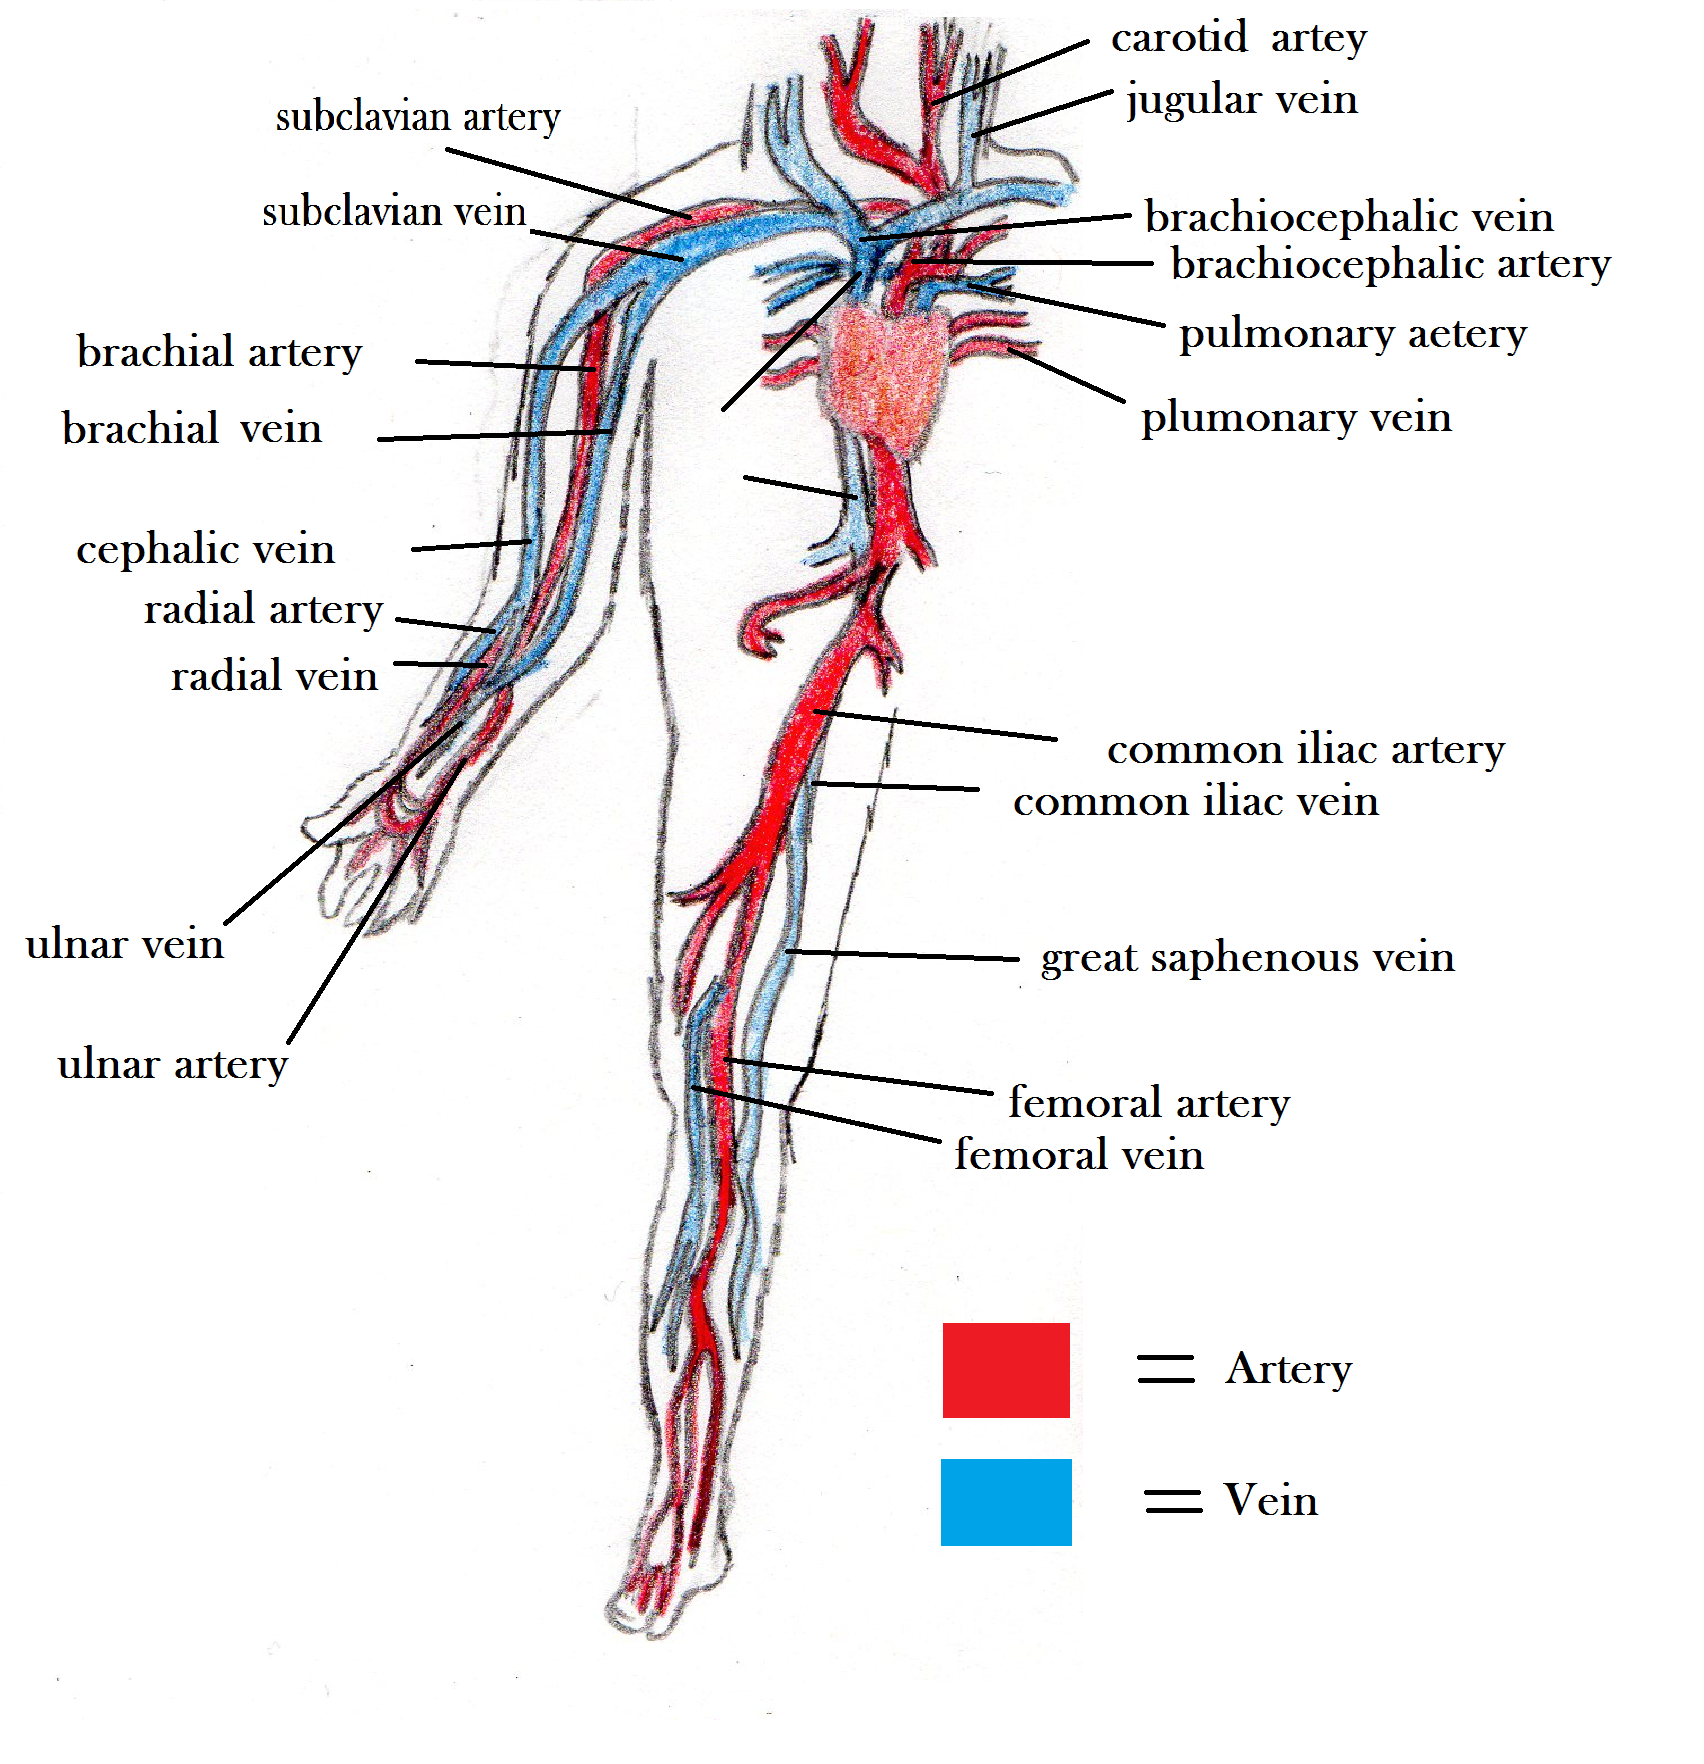 Veins And Arteries Diagram Arteries And Veins Blood Vessel Diagram The Circulatory System